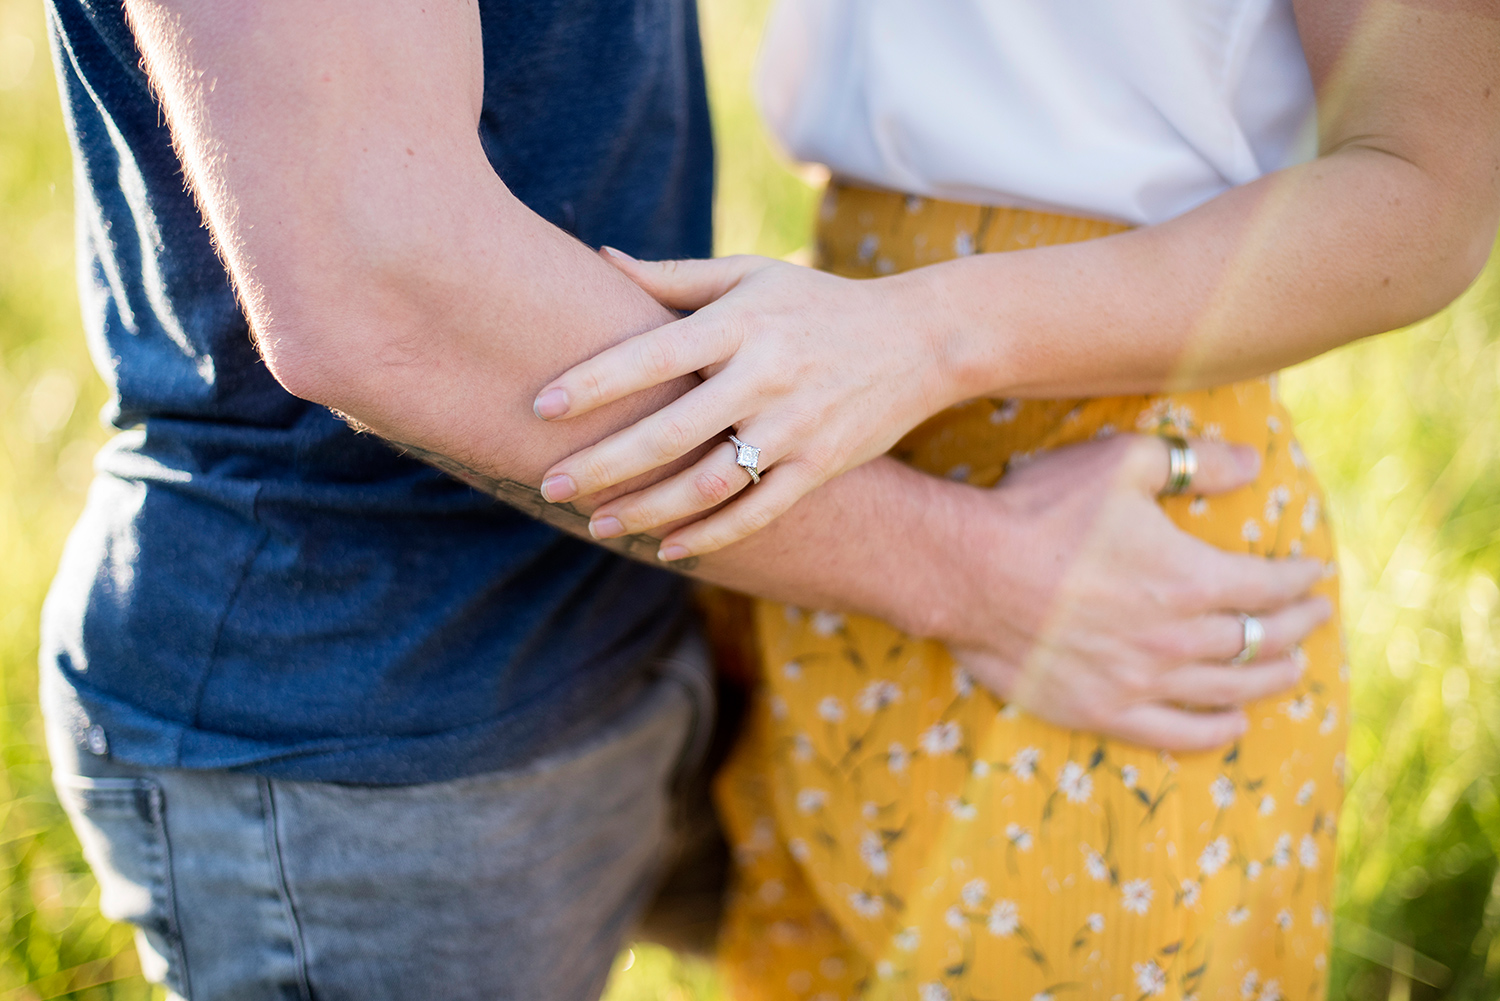 engagement photographer perth 11.jpg